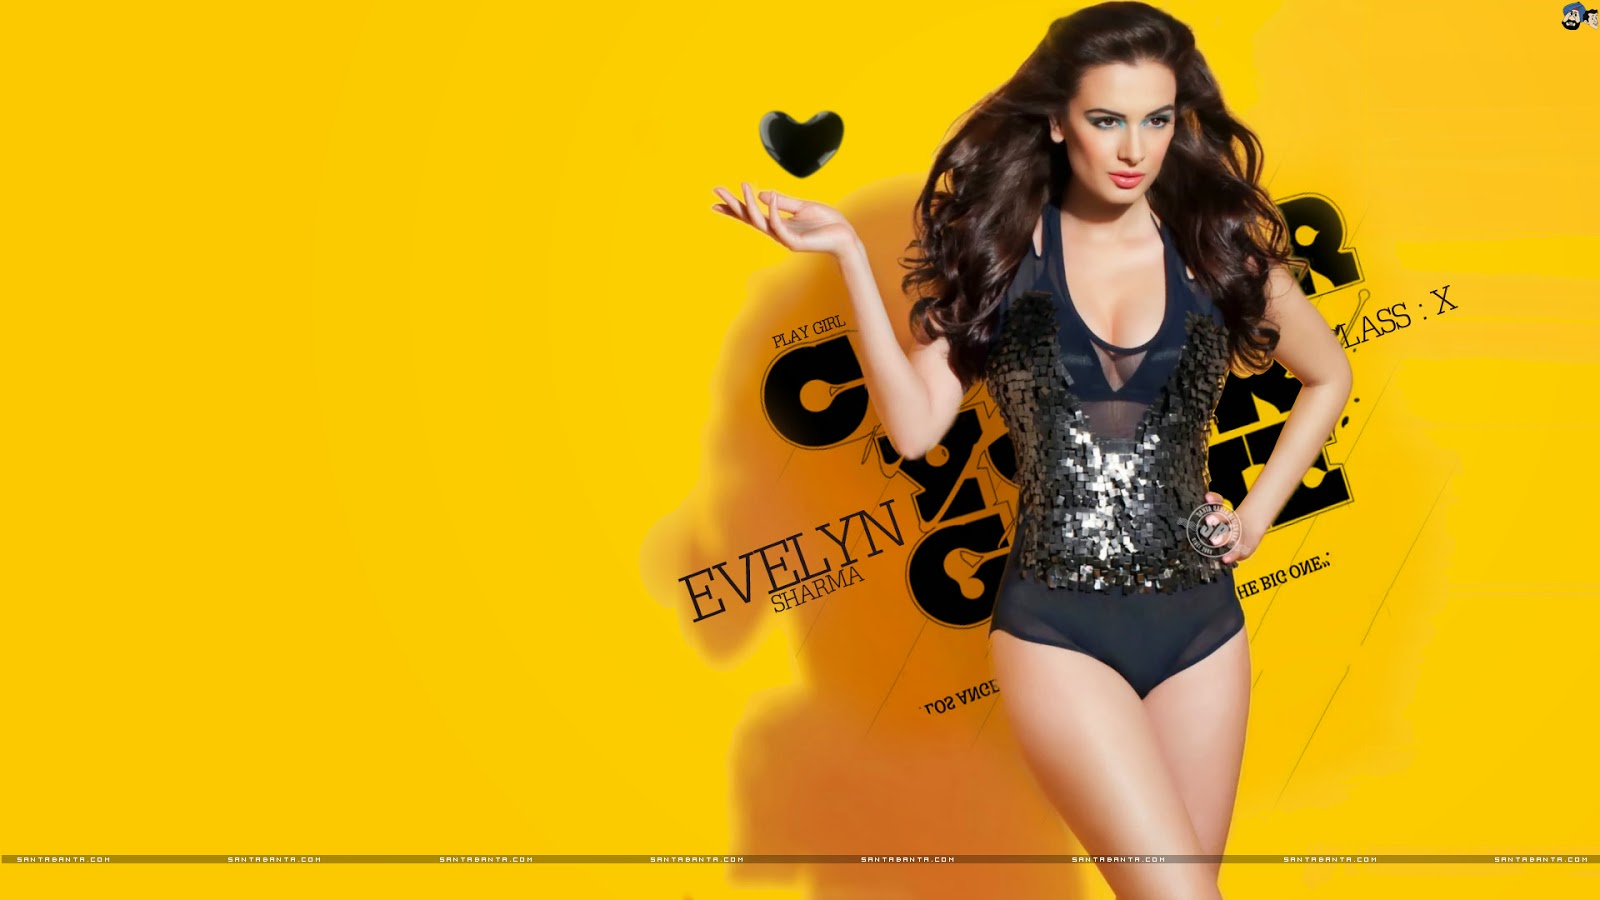 Evelyn Sharma wallpaper hd bikini